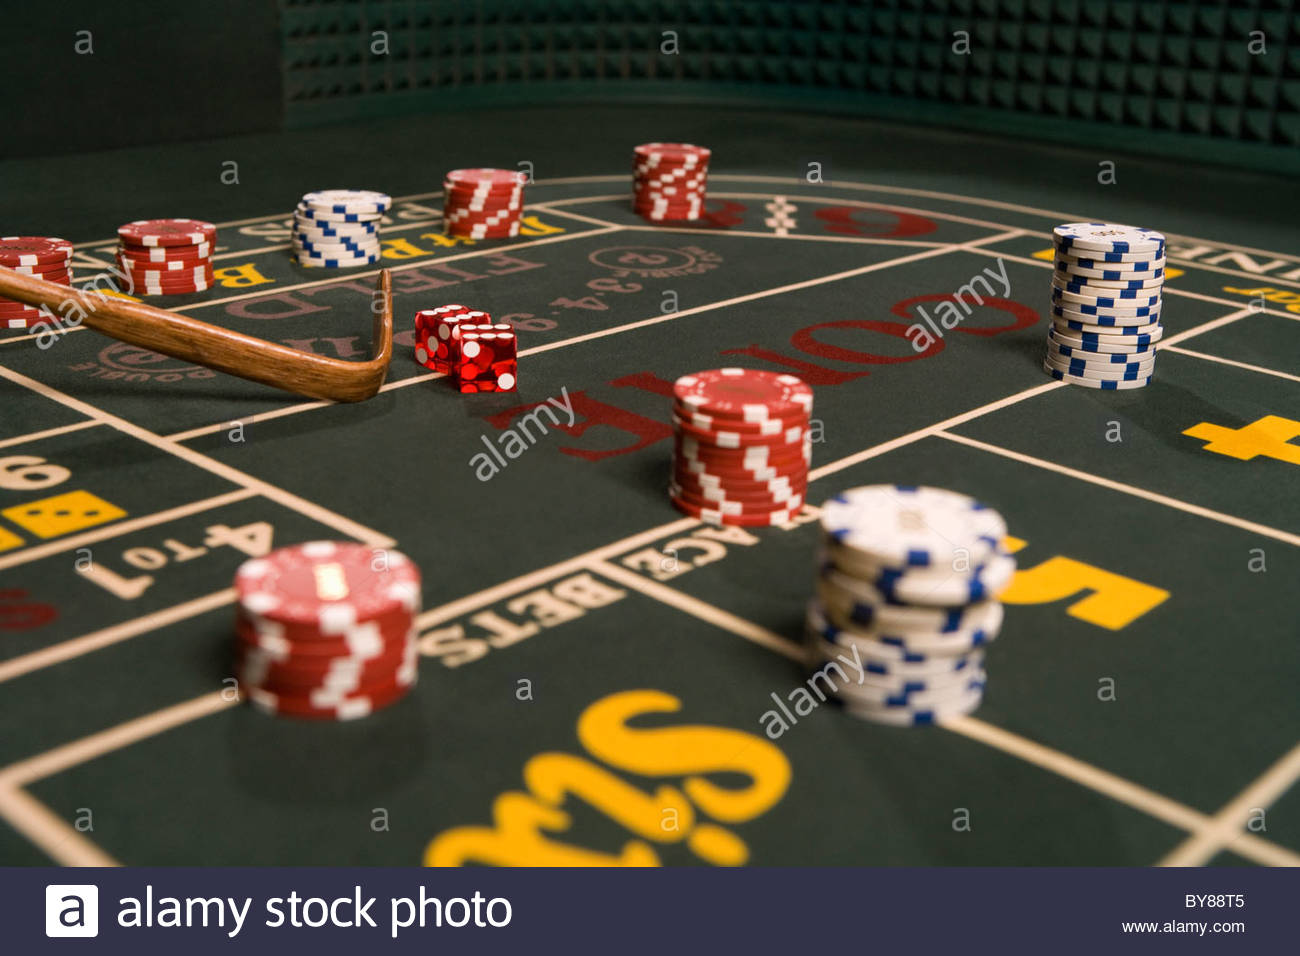 Dice and gambling chips on craps table Stock Photo